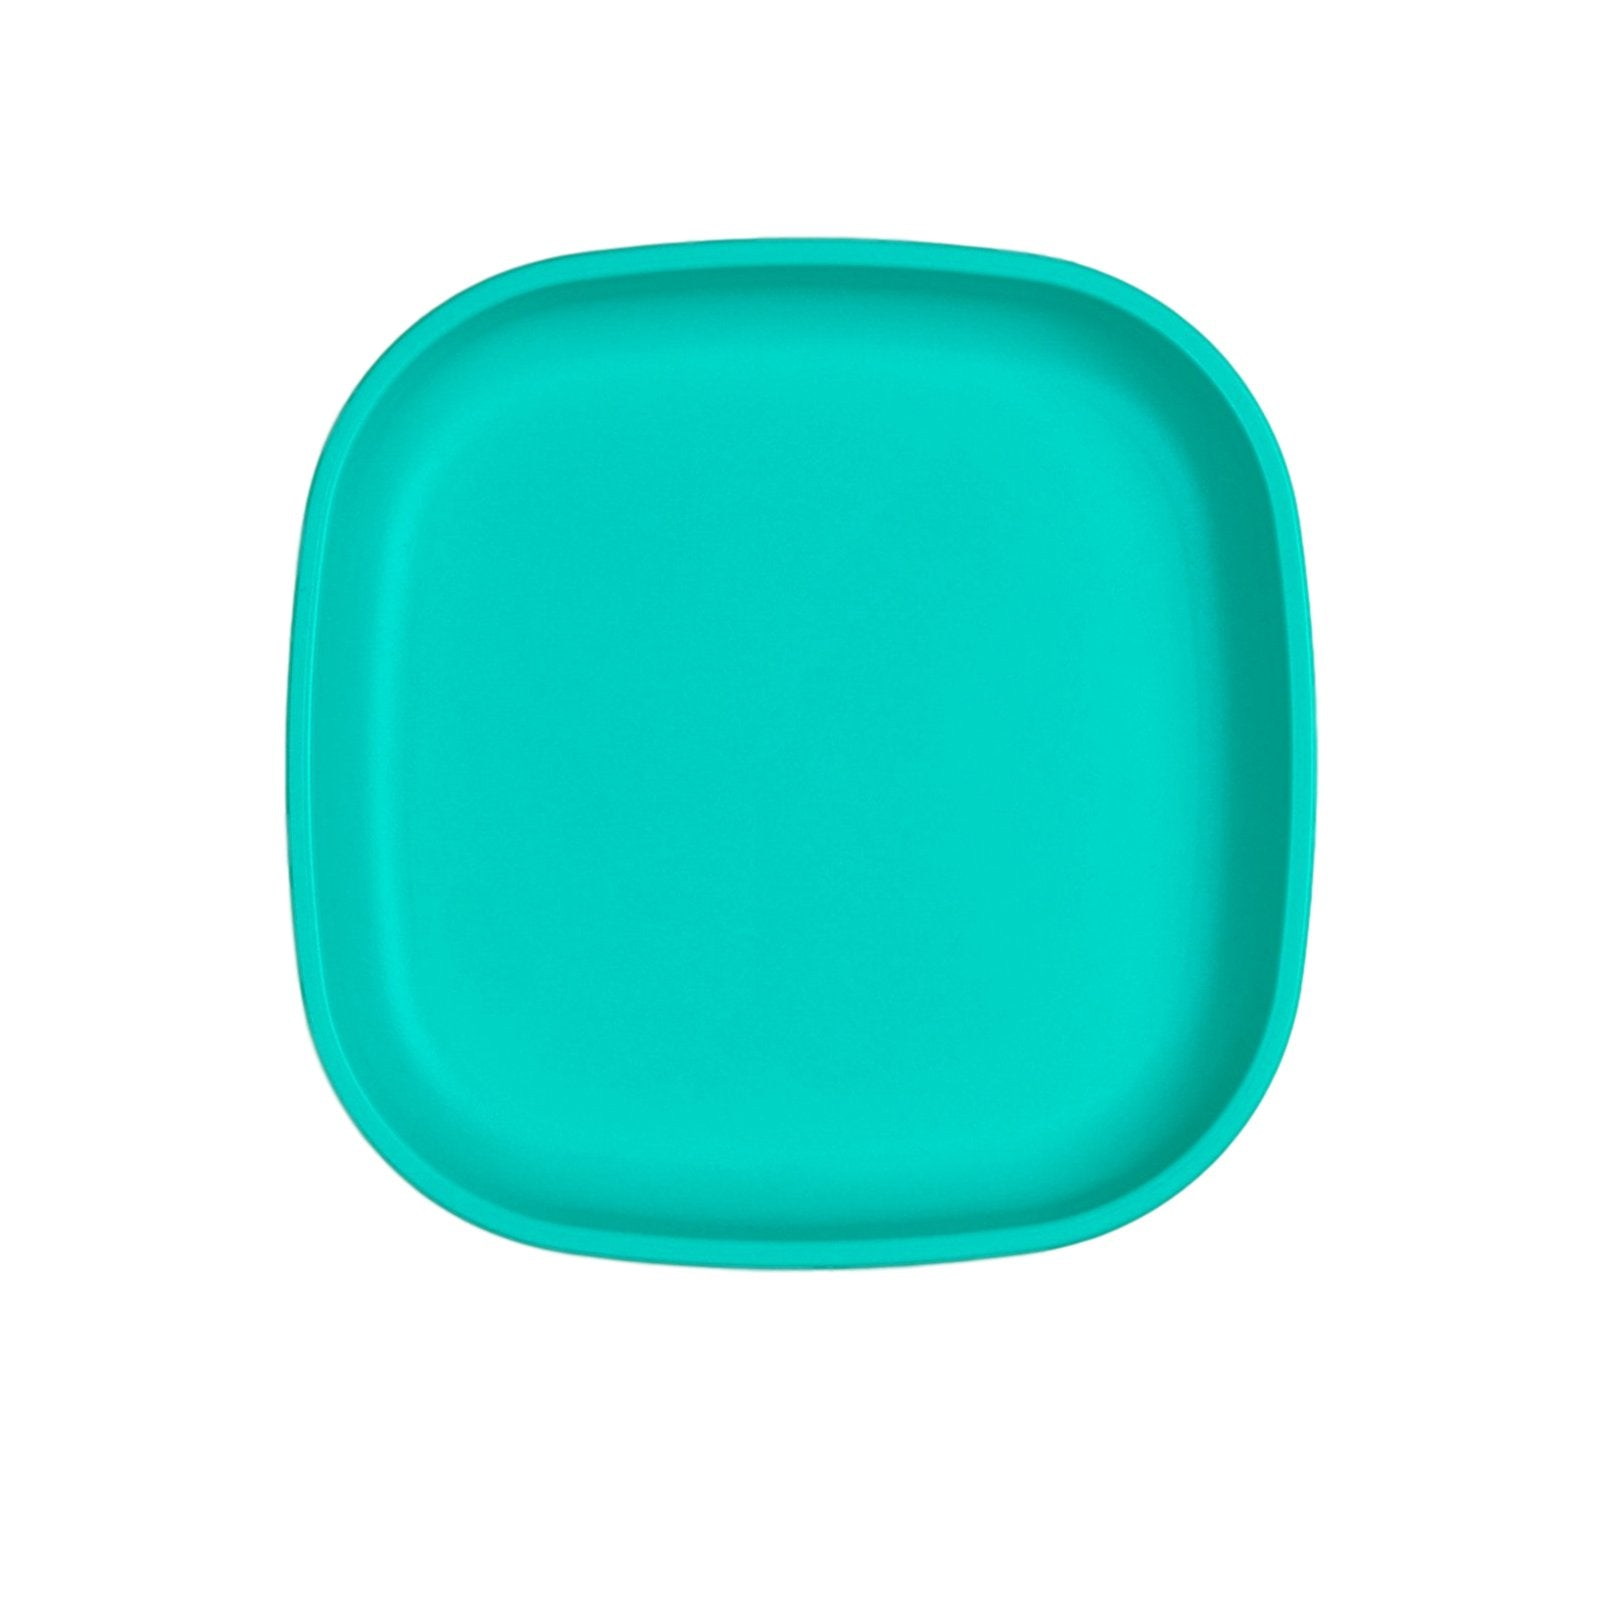 Replay Large Plate Replay Dinnerware Aqua at Little Earth Nest Eco Shop